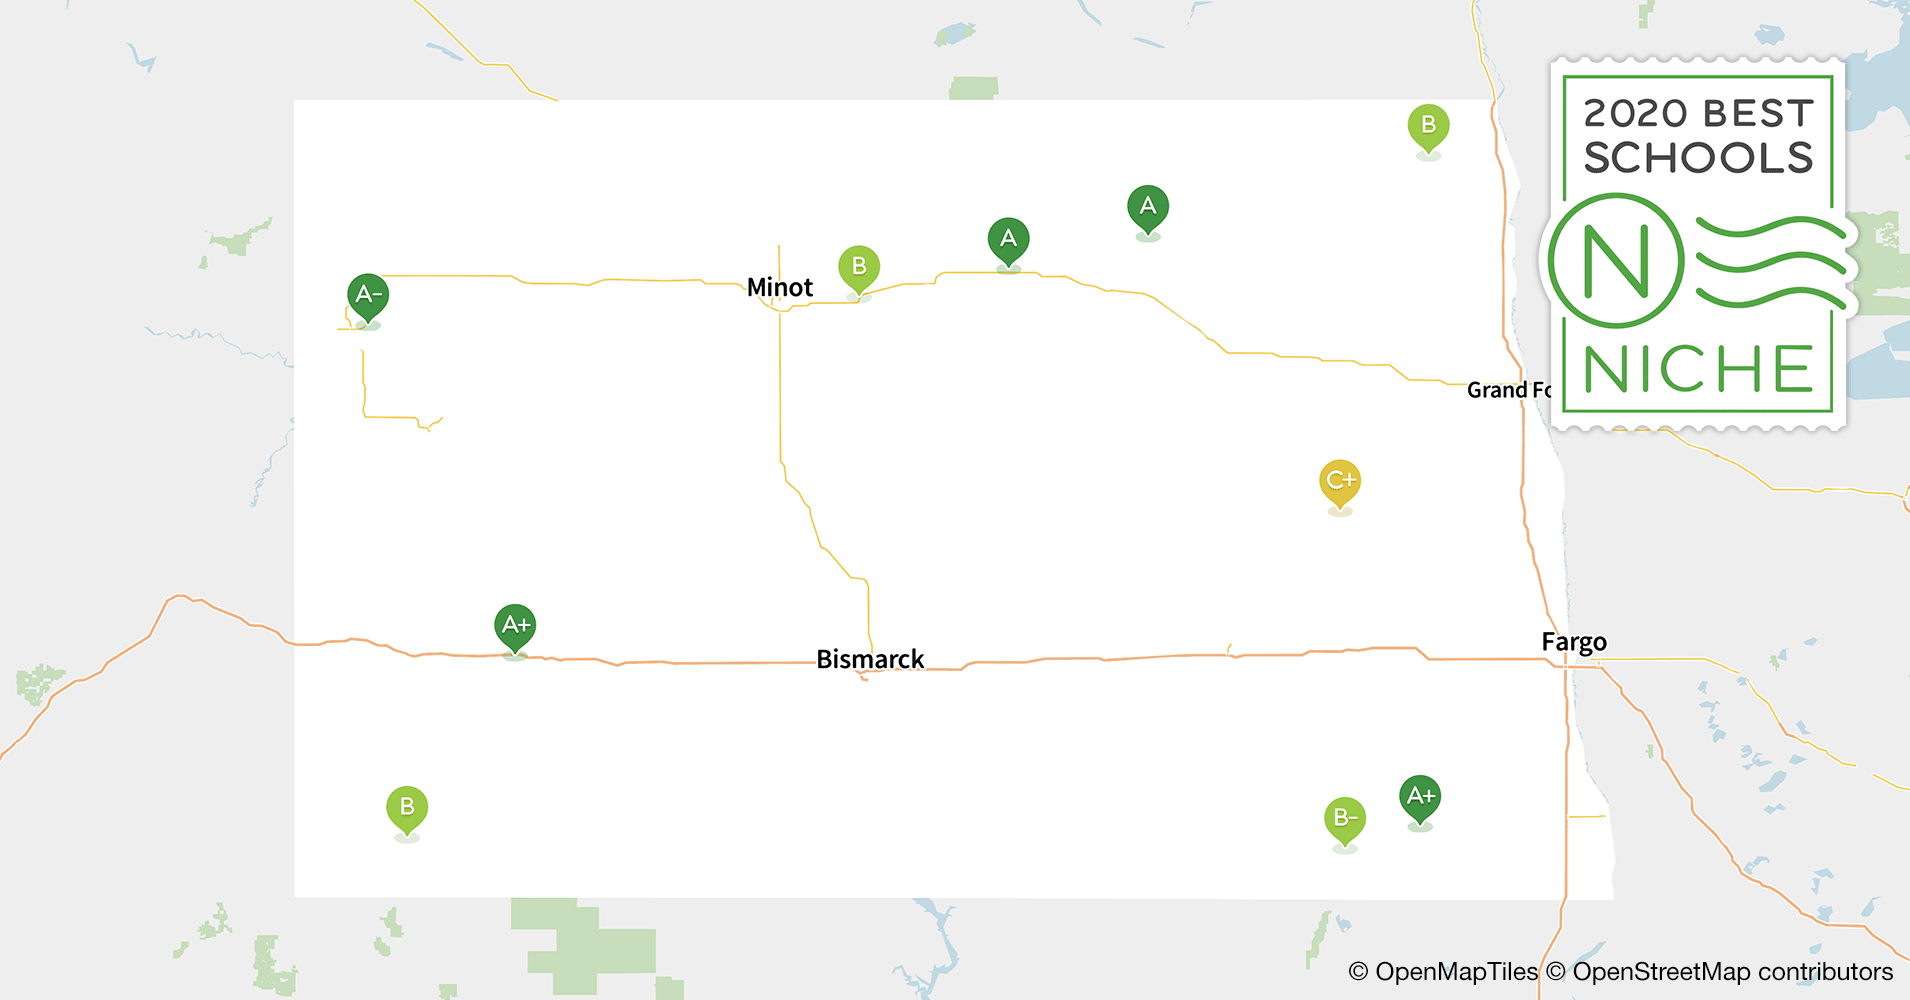 2020 Best School Districts in North Dakota - Niche